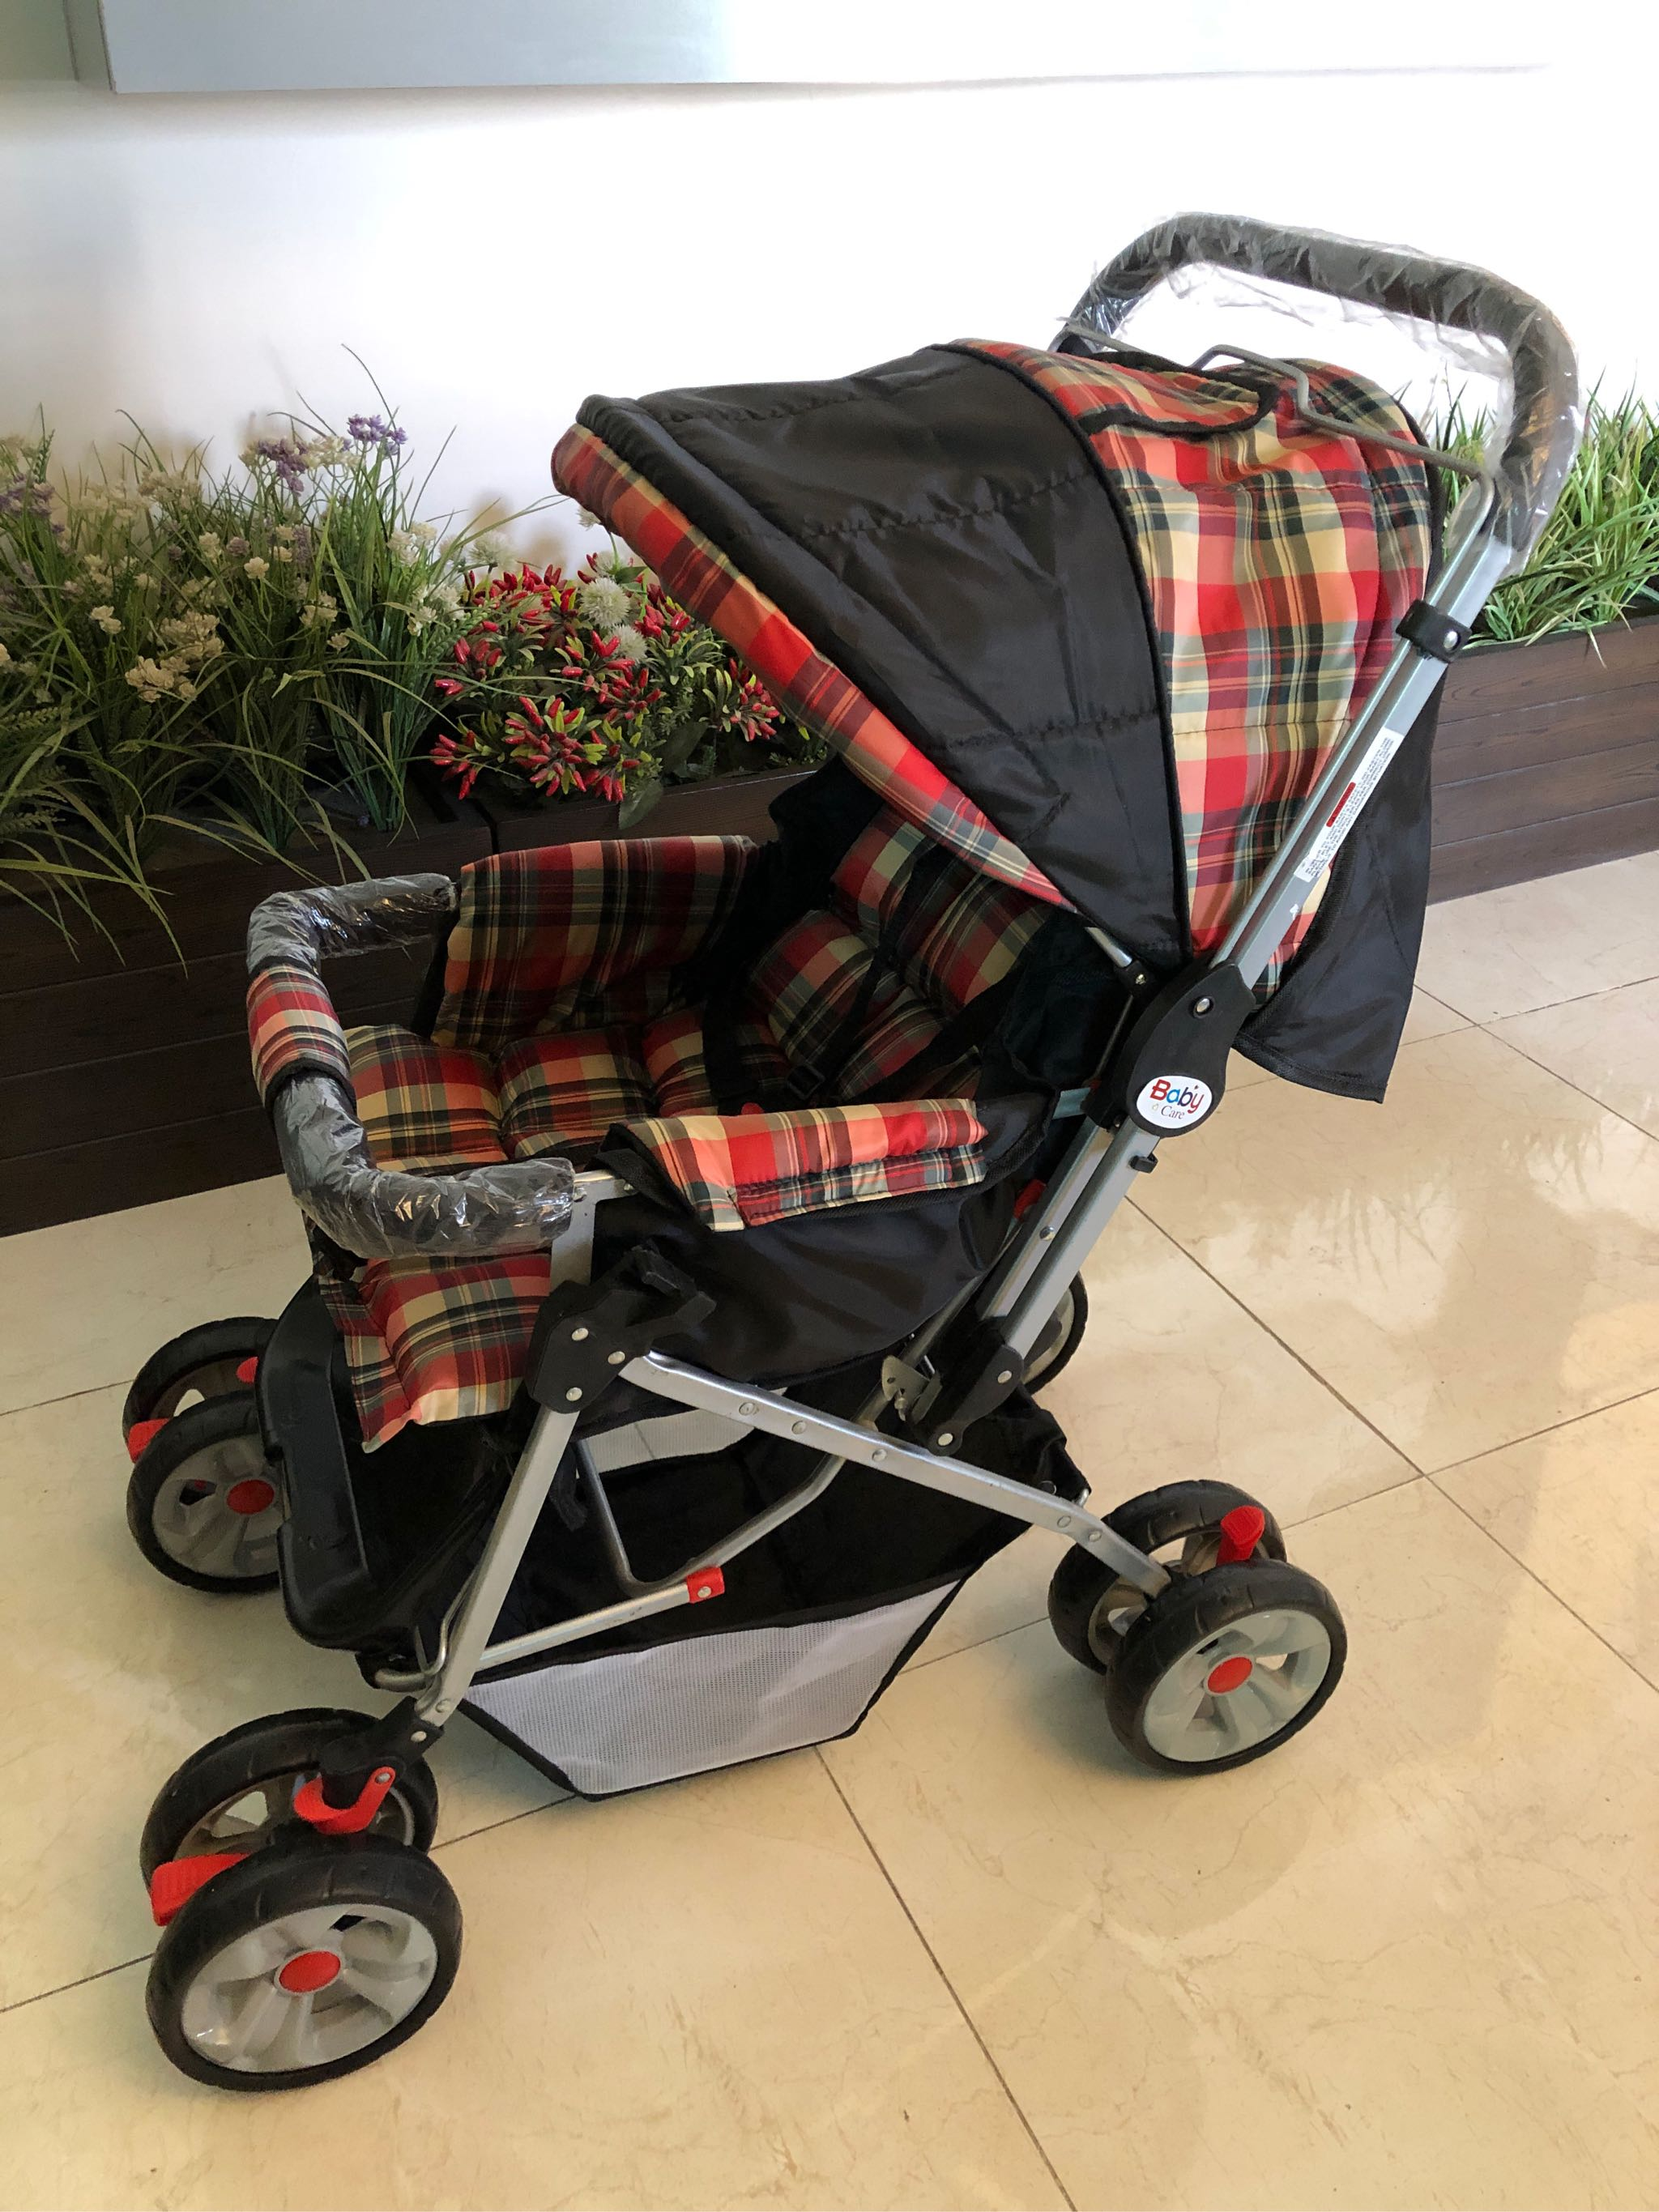 Shopify BABY PRAMS IMPORTED PRAM 8 WHEELS BABY STROLLER CHROME FOLDABLE AND SEAT ADJUSTABLE